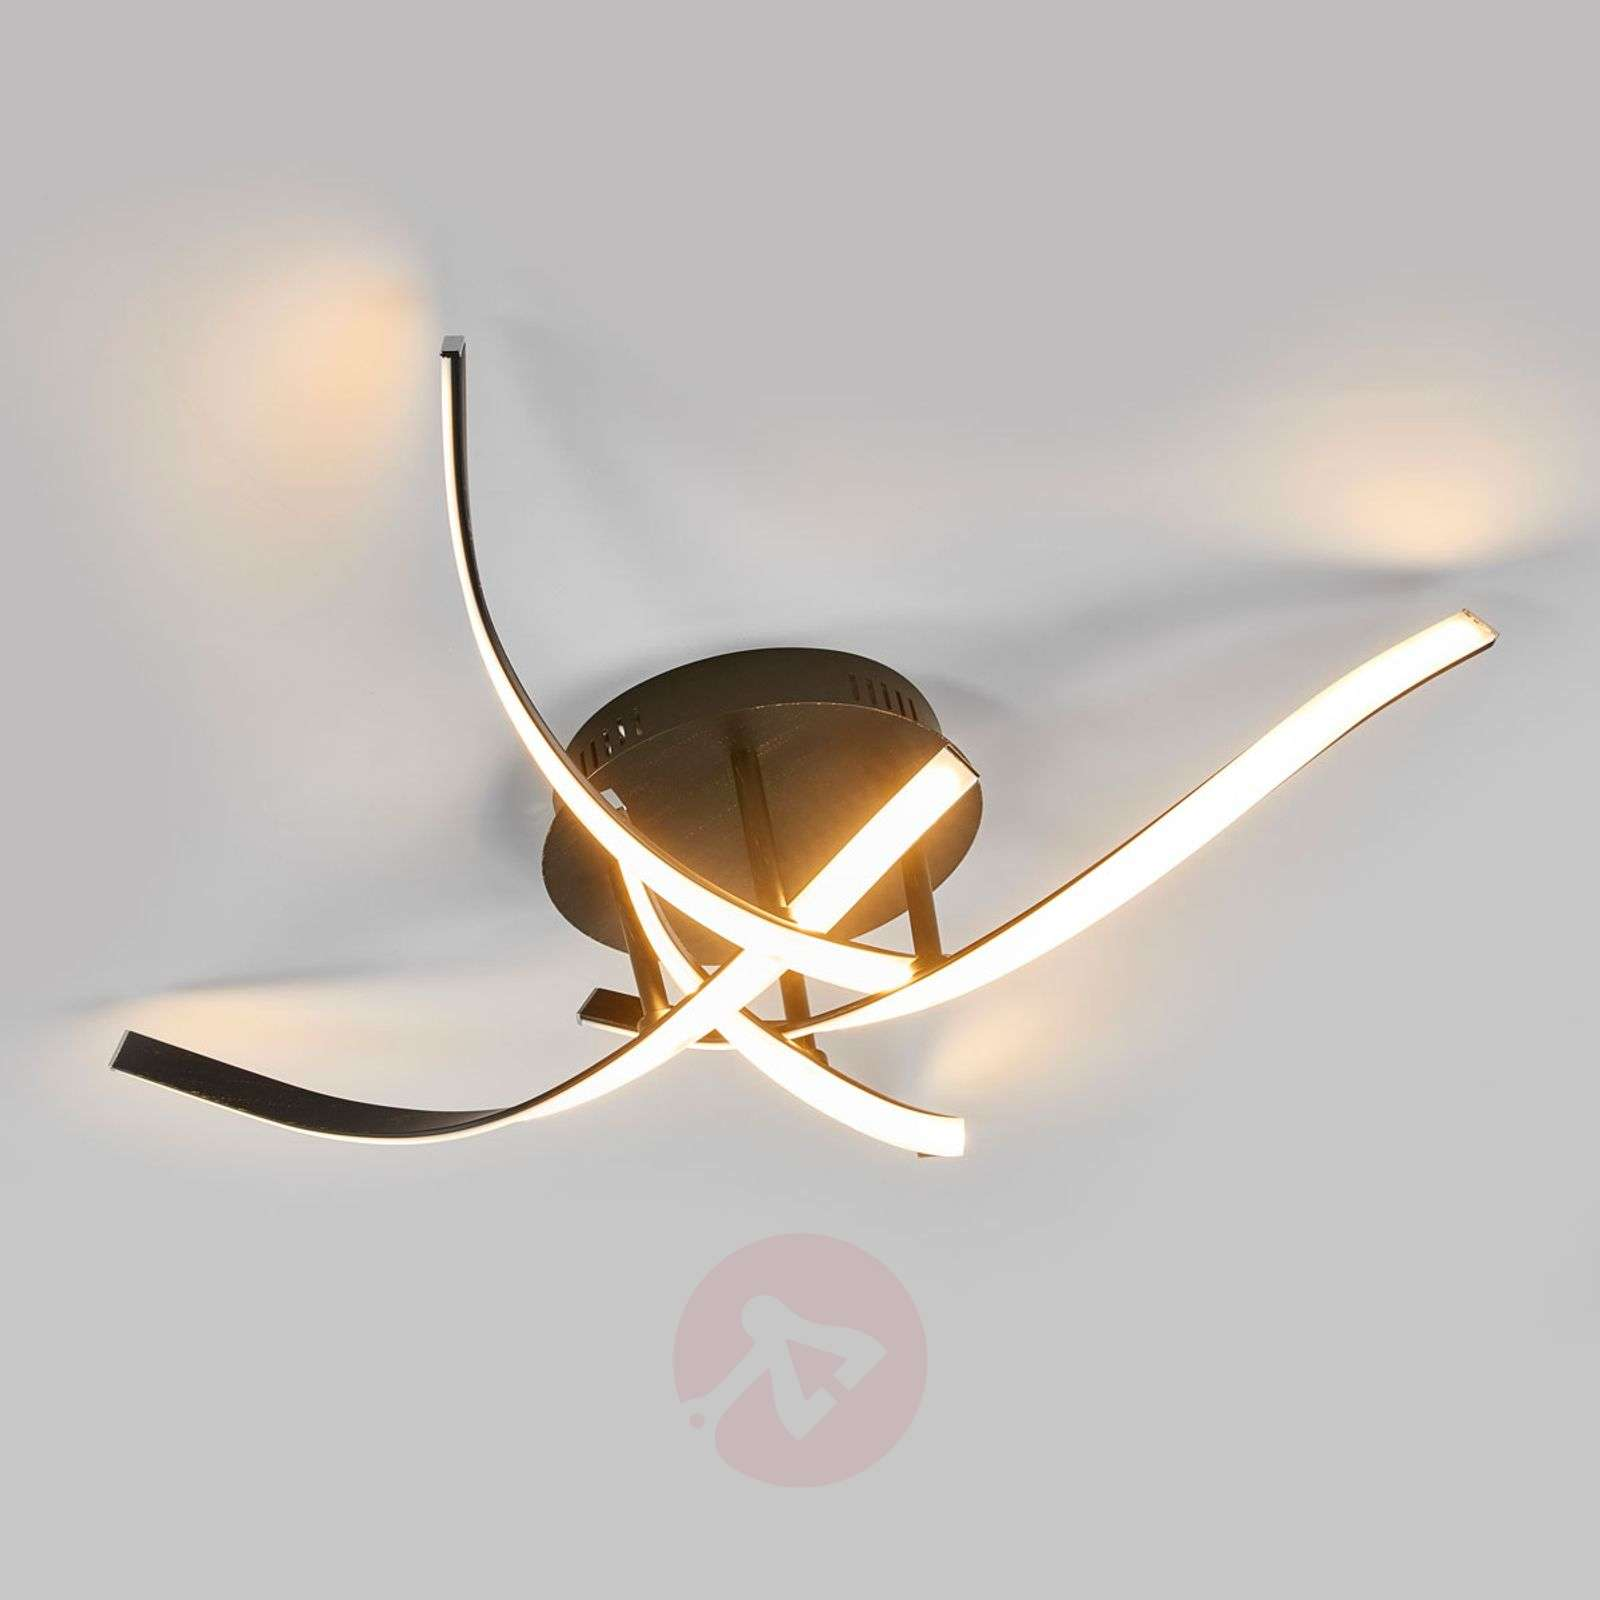 Milane dimmable LED ceiling lamp-9985061-02